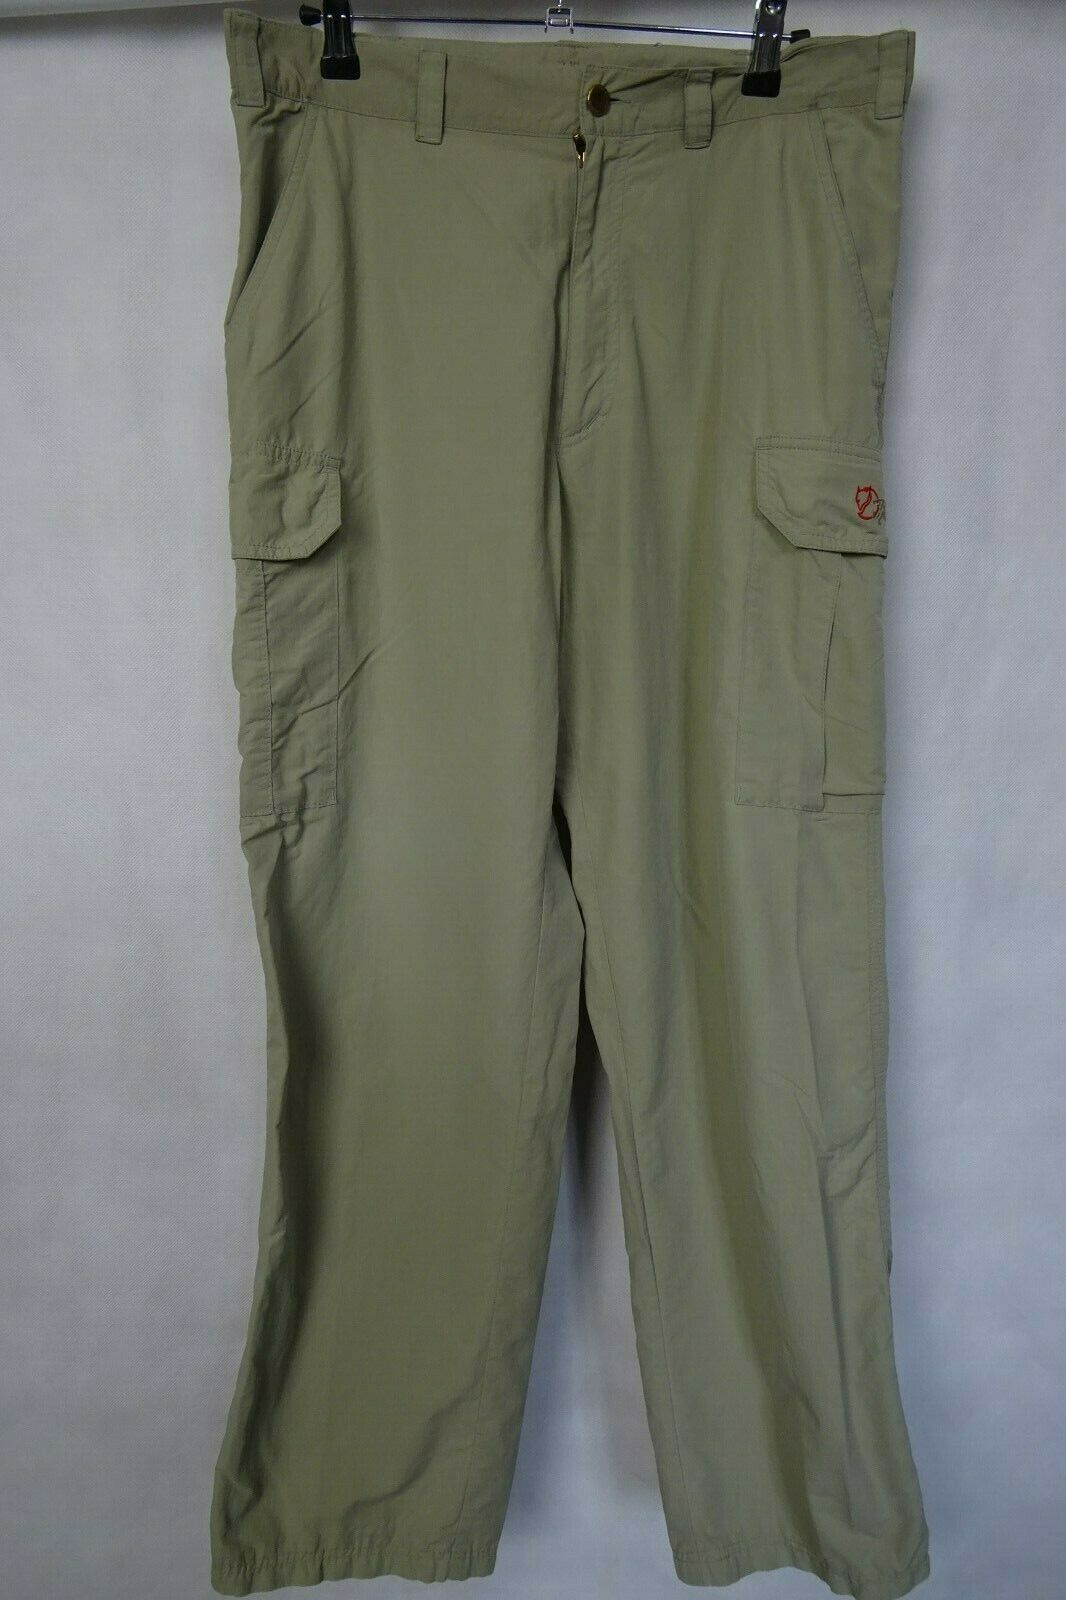 Men's Fjällräven Outdoor Trousers Pants W32 L29